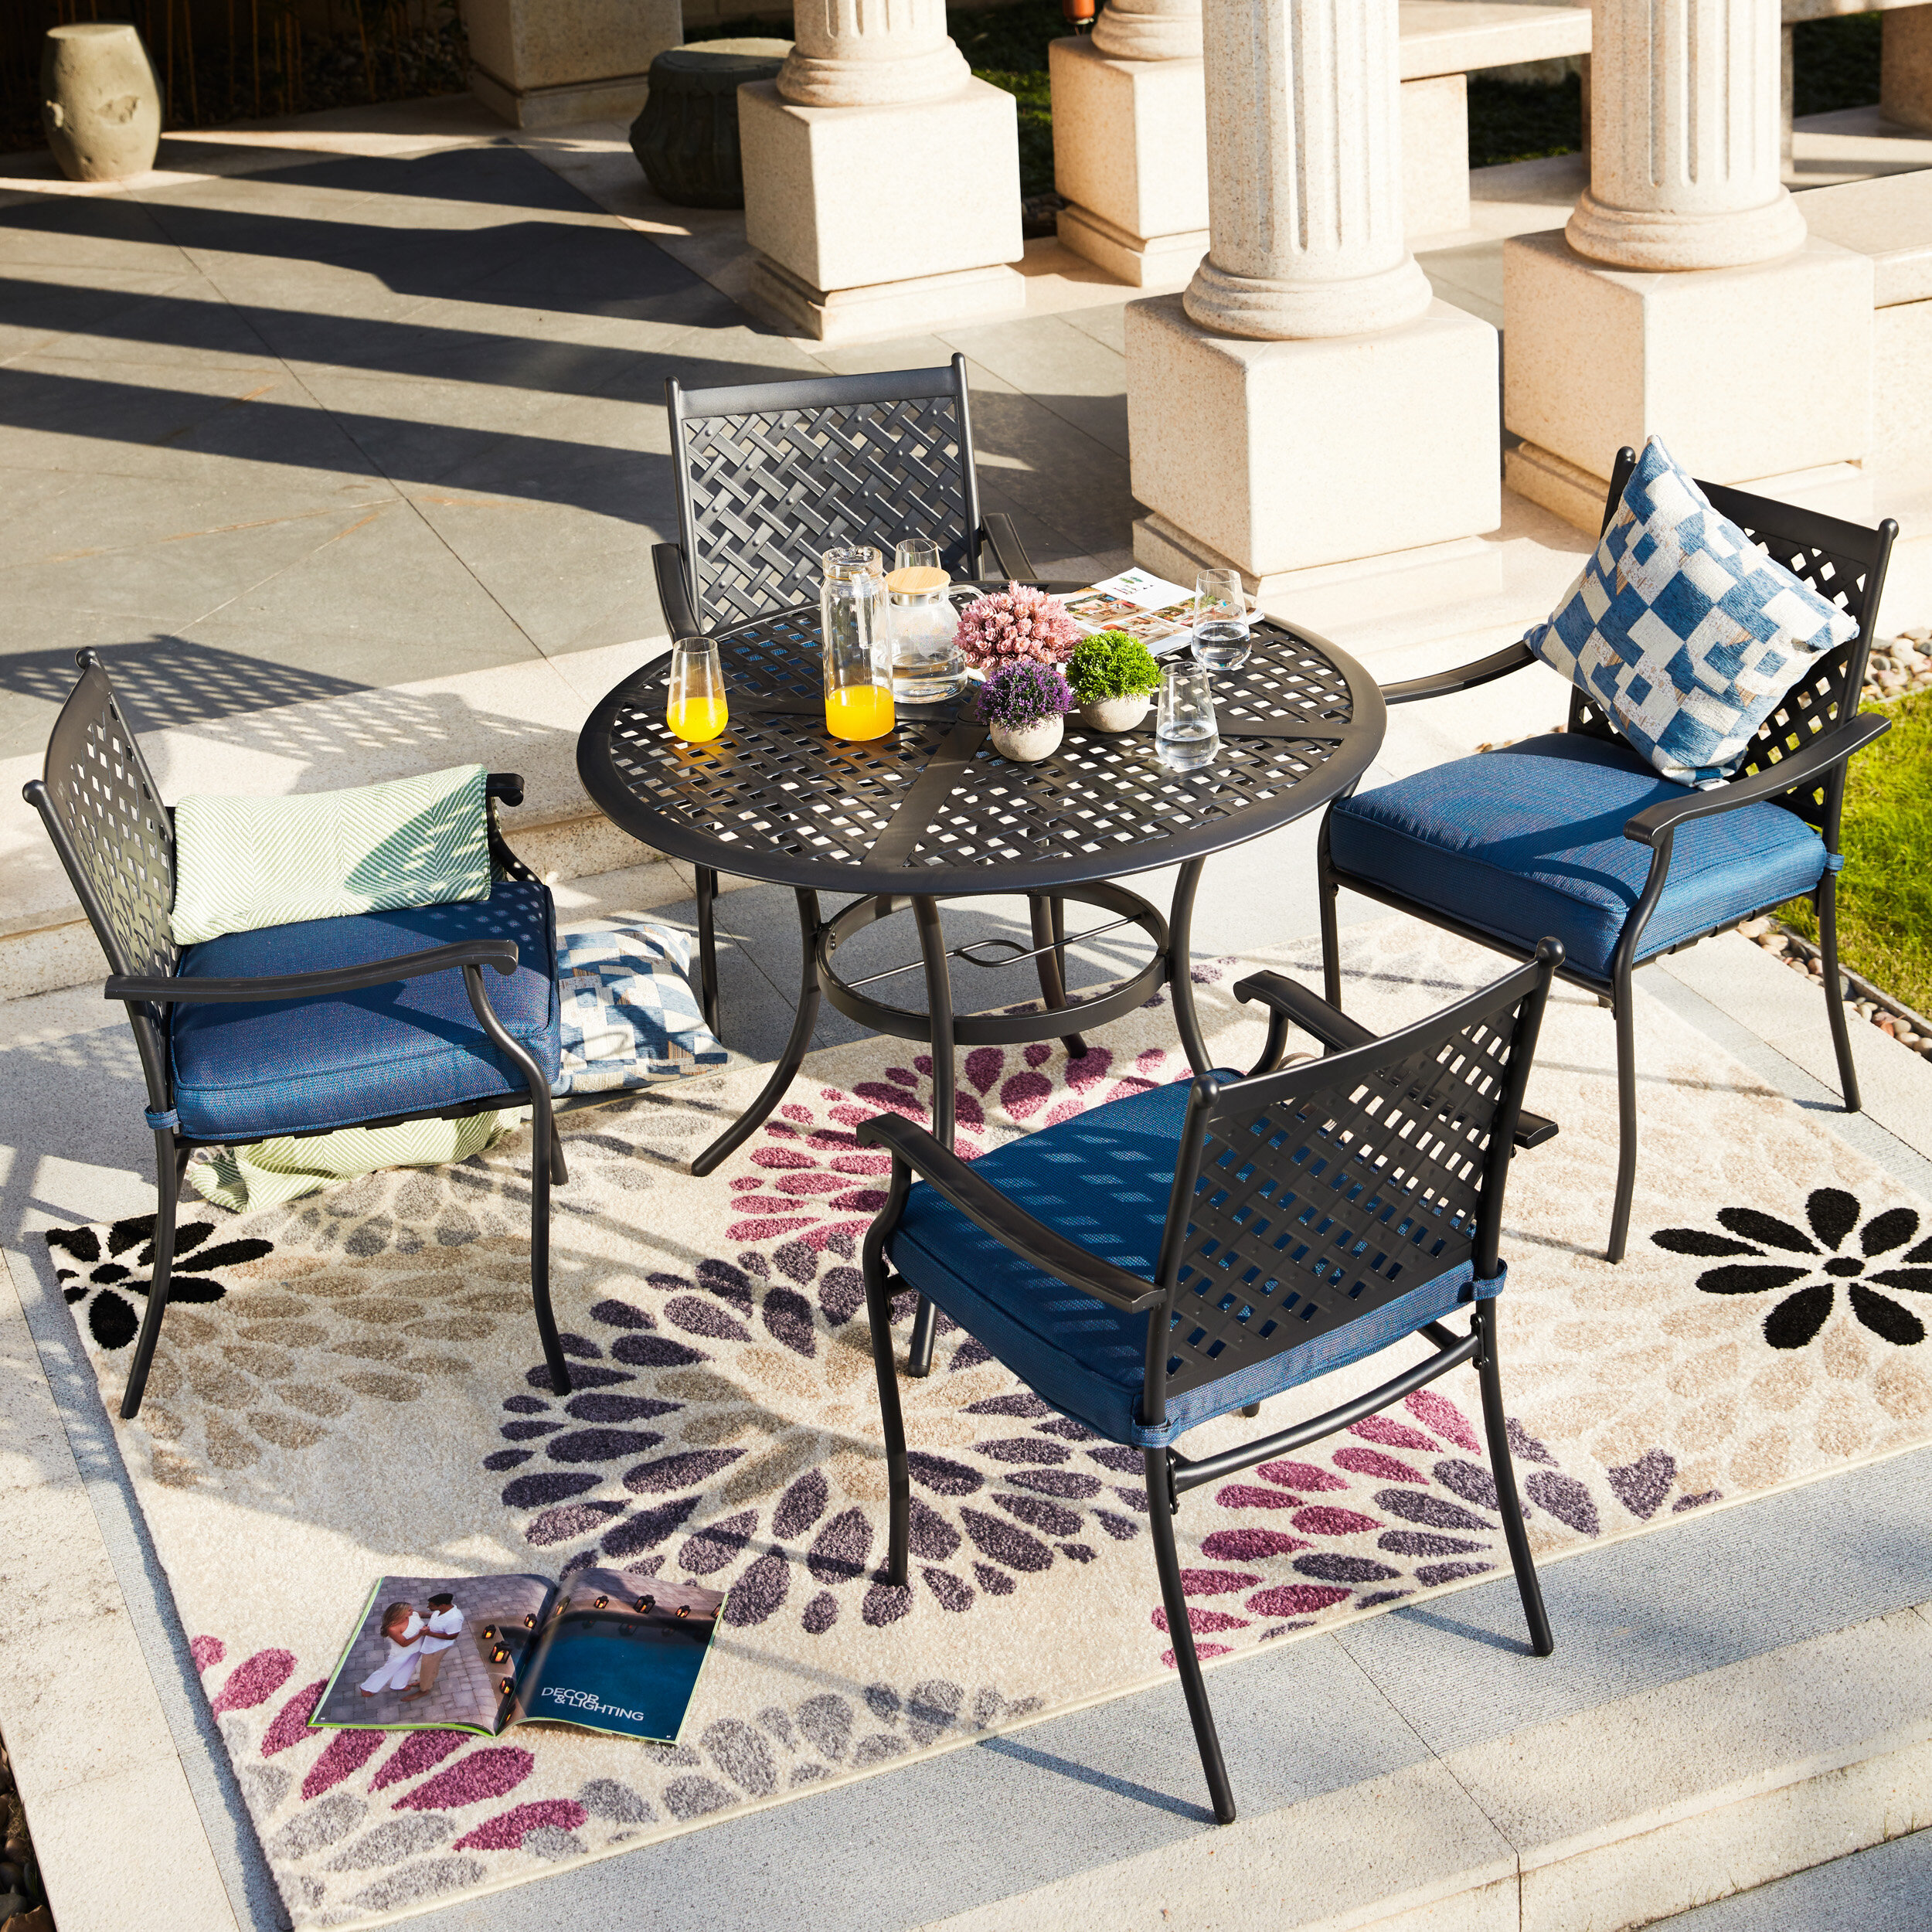 Charlton Home Shipp Round 4 Person 42 Long Dining Set With Cushions Reviews Wayfair